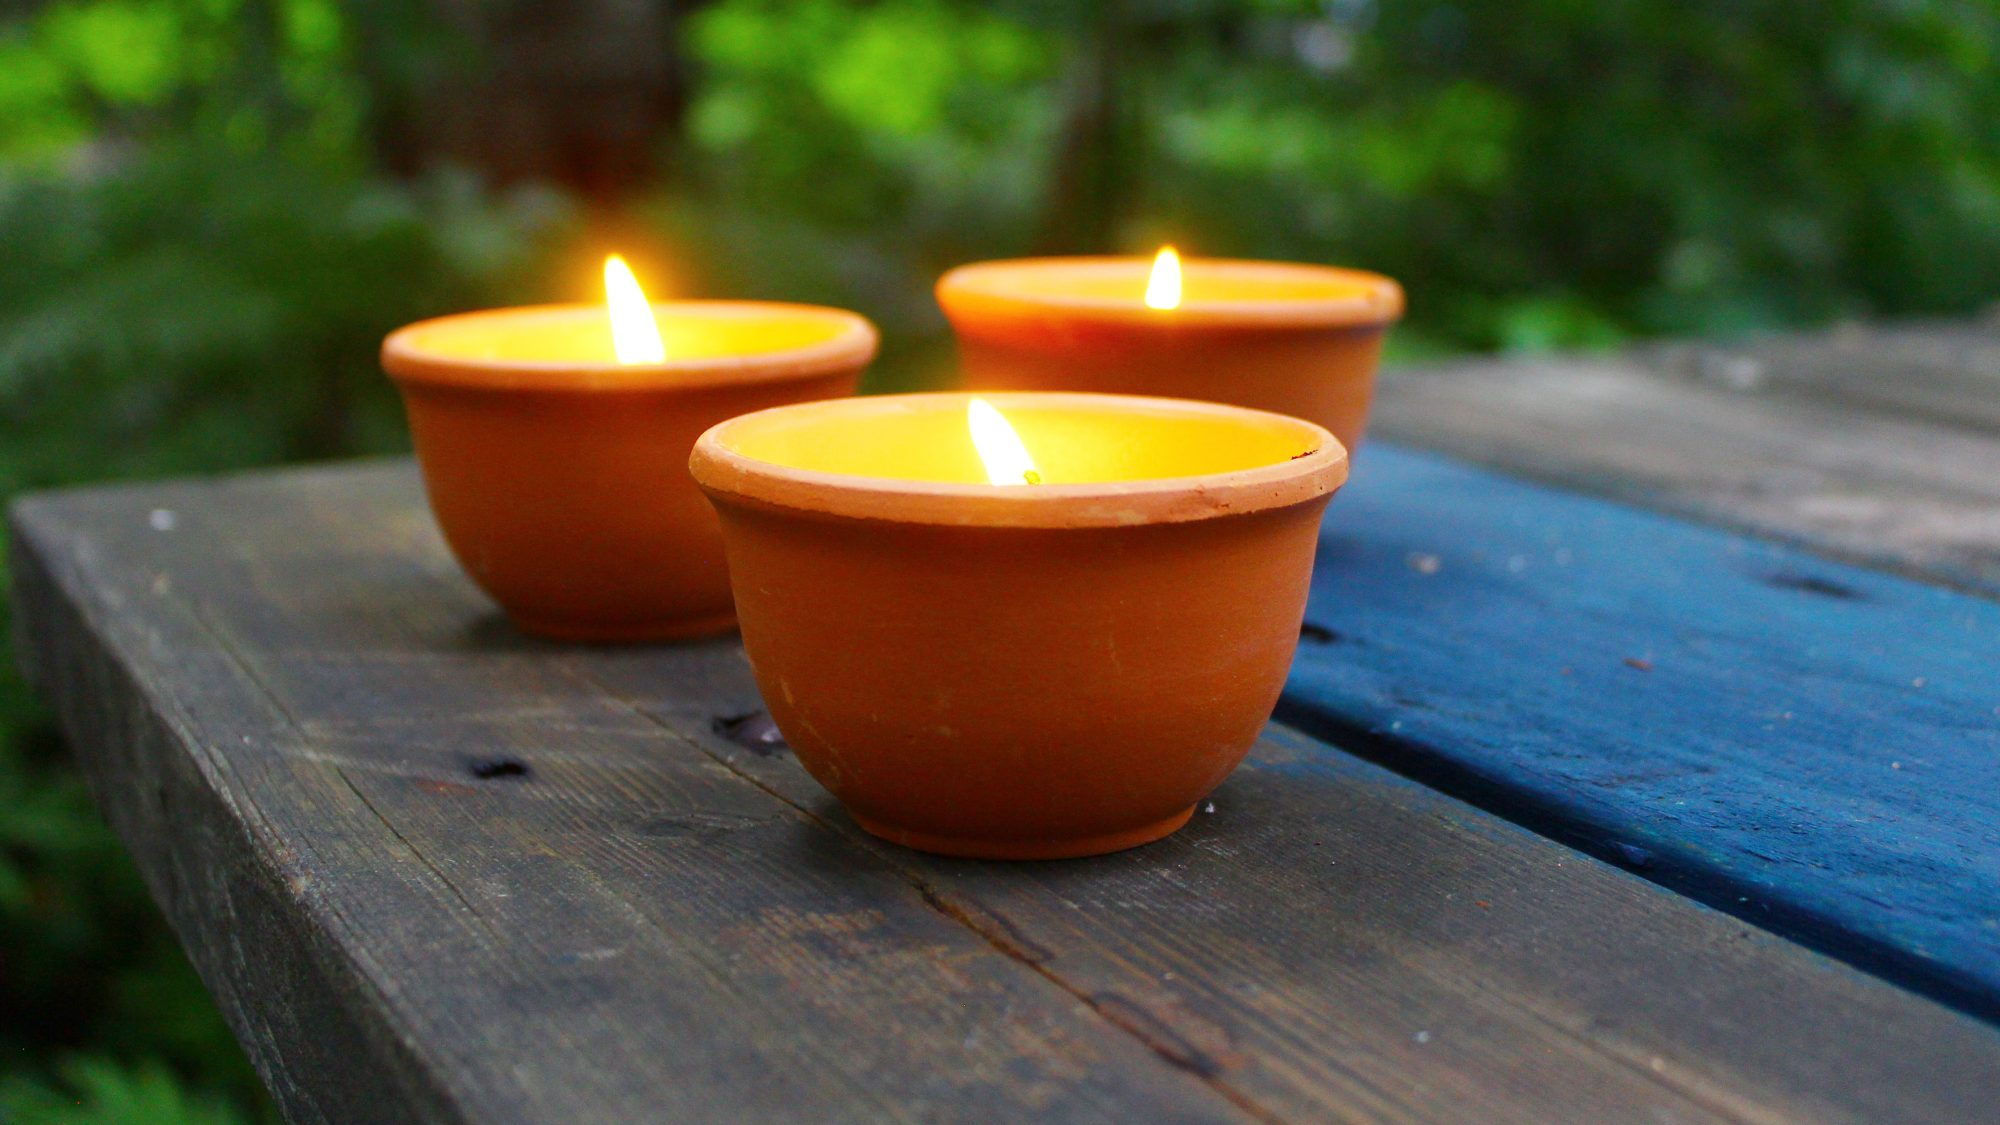 Lit candles placed outside on a wood table